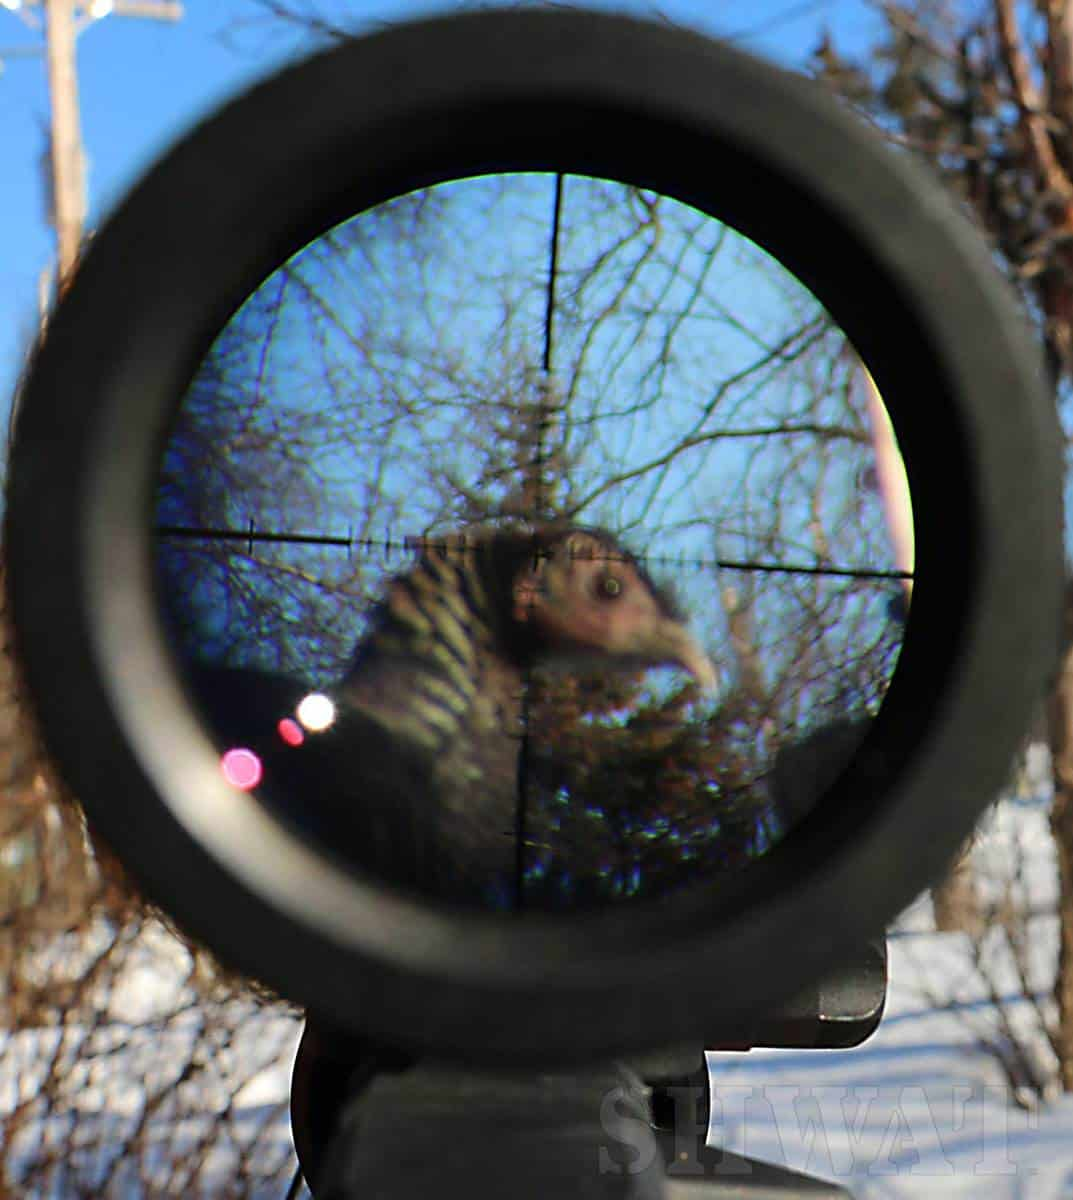 Using magnified optics hunting